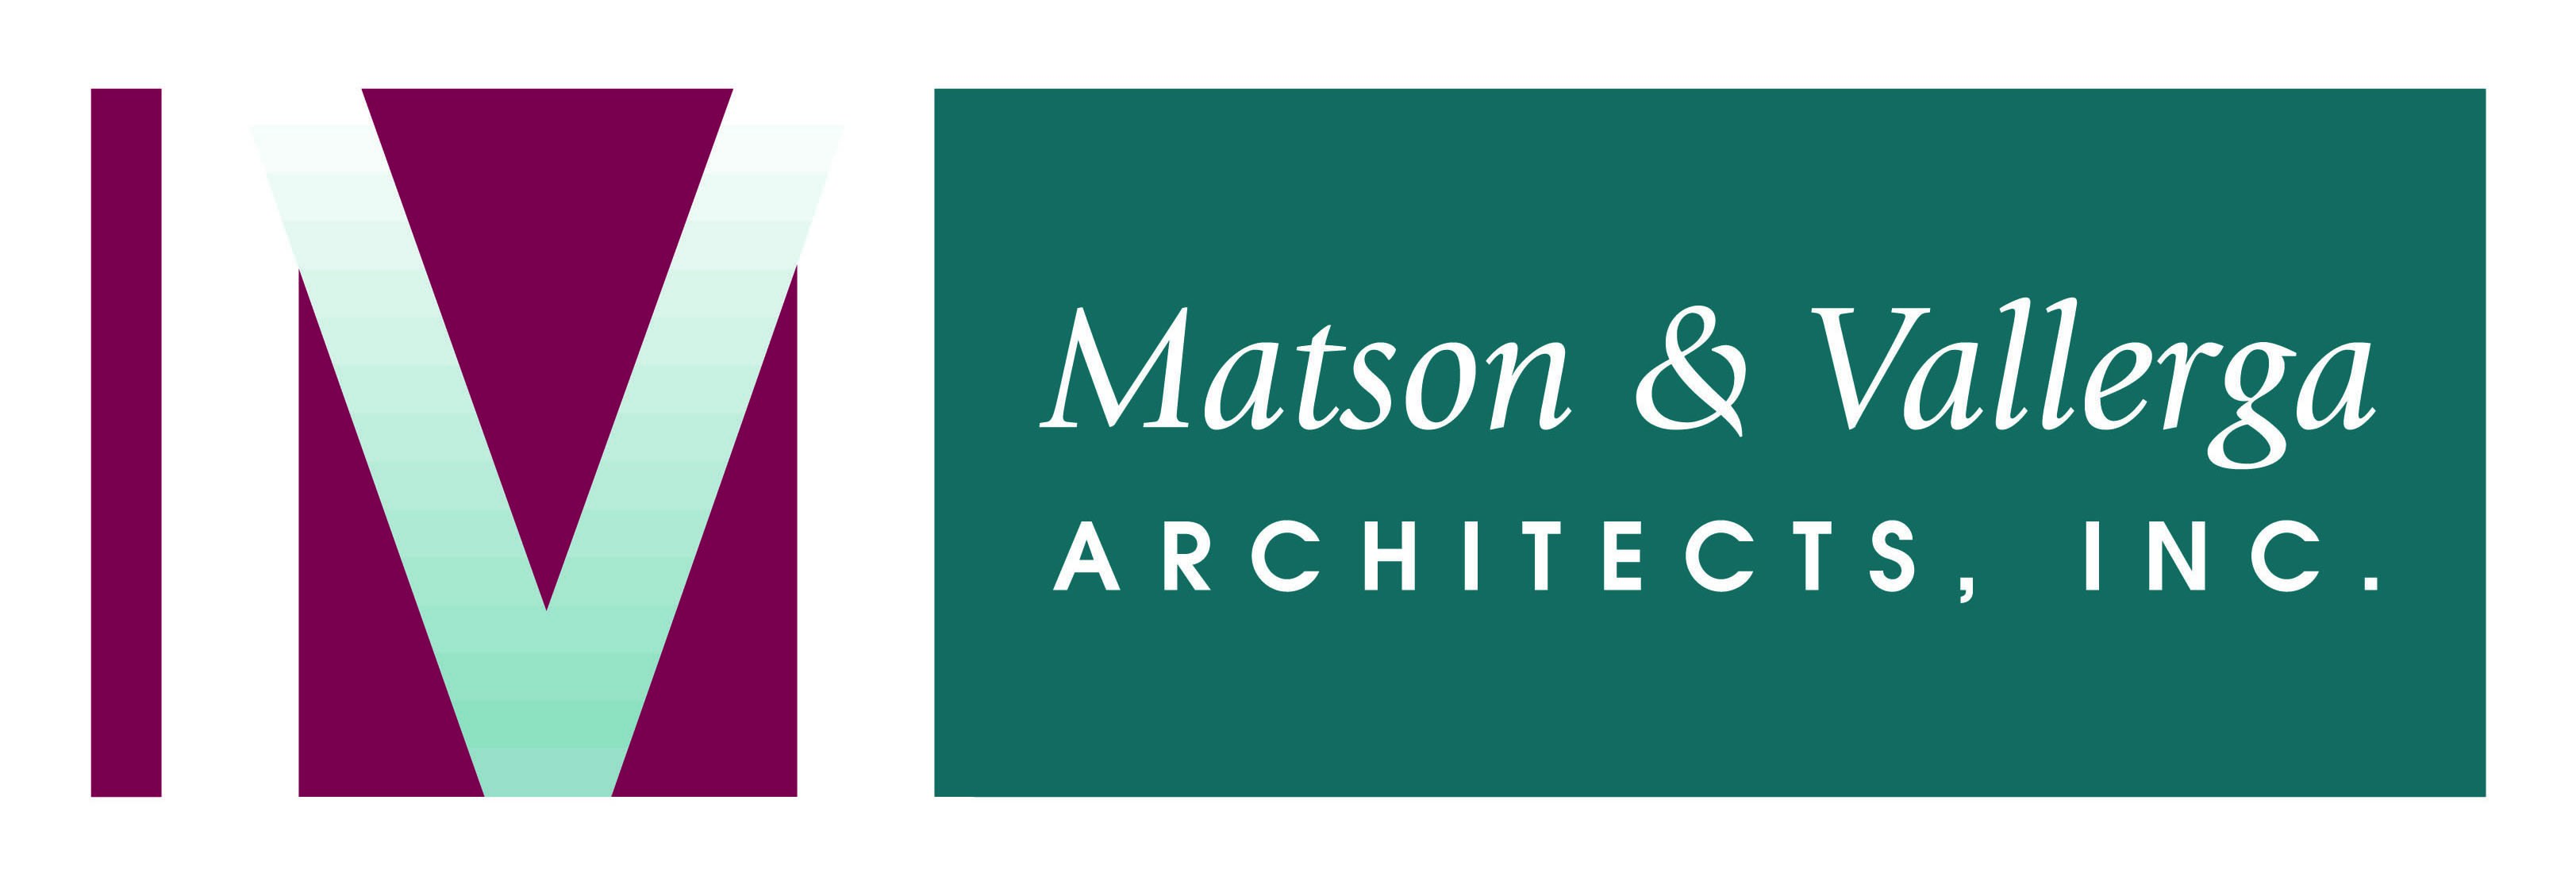 Matson & Vallerga Architects, Inc.